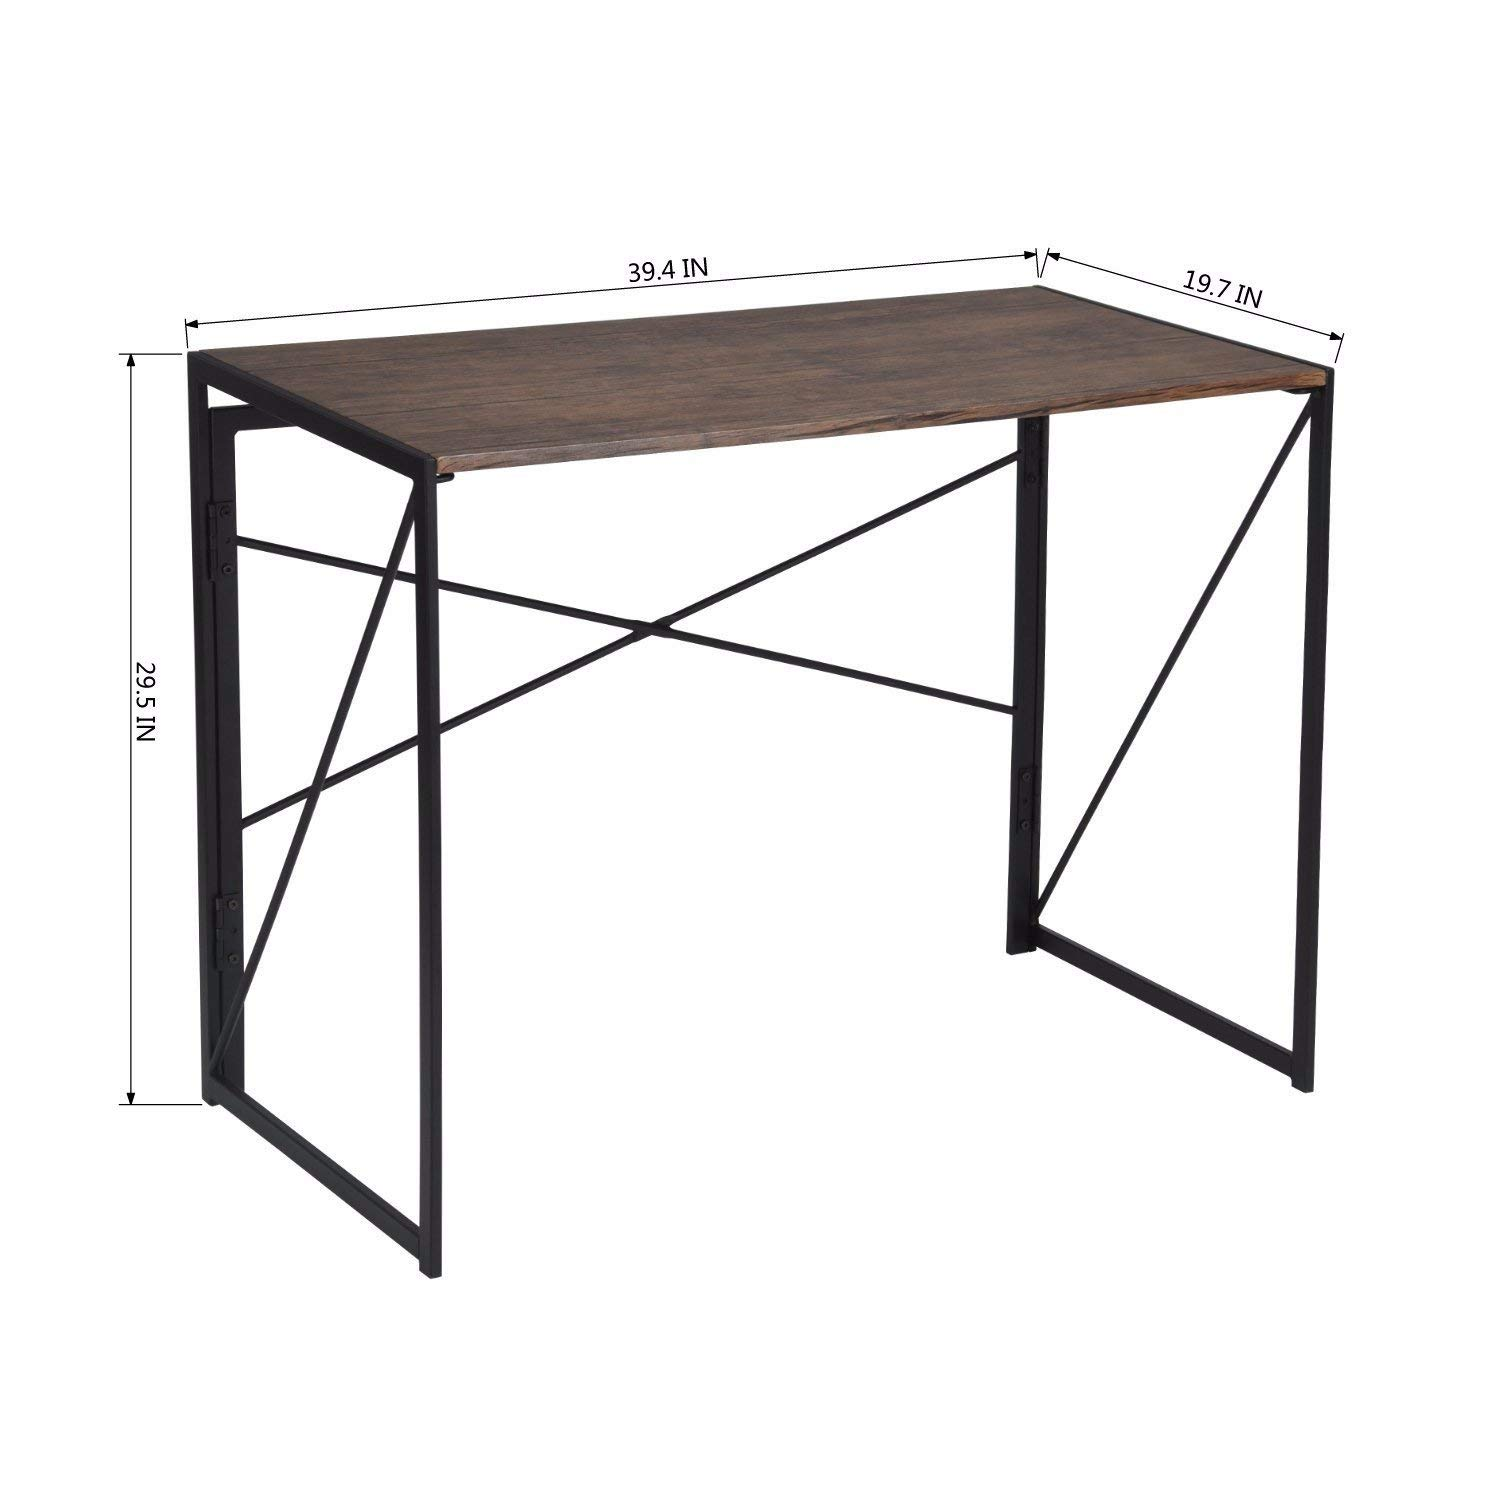 Indoor and Outdoor Study computer Desk Bedroom modern Style Table Modern simple industrial style multifunctional rectangular Table, computer Table home Table, 39.4x19.7x29.5 inches, brown